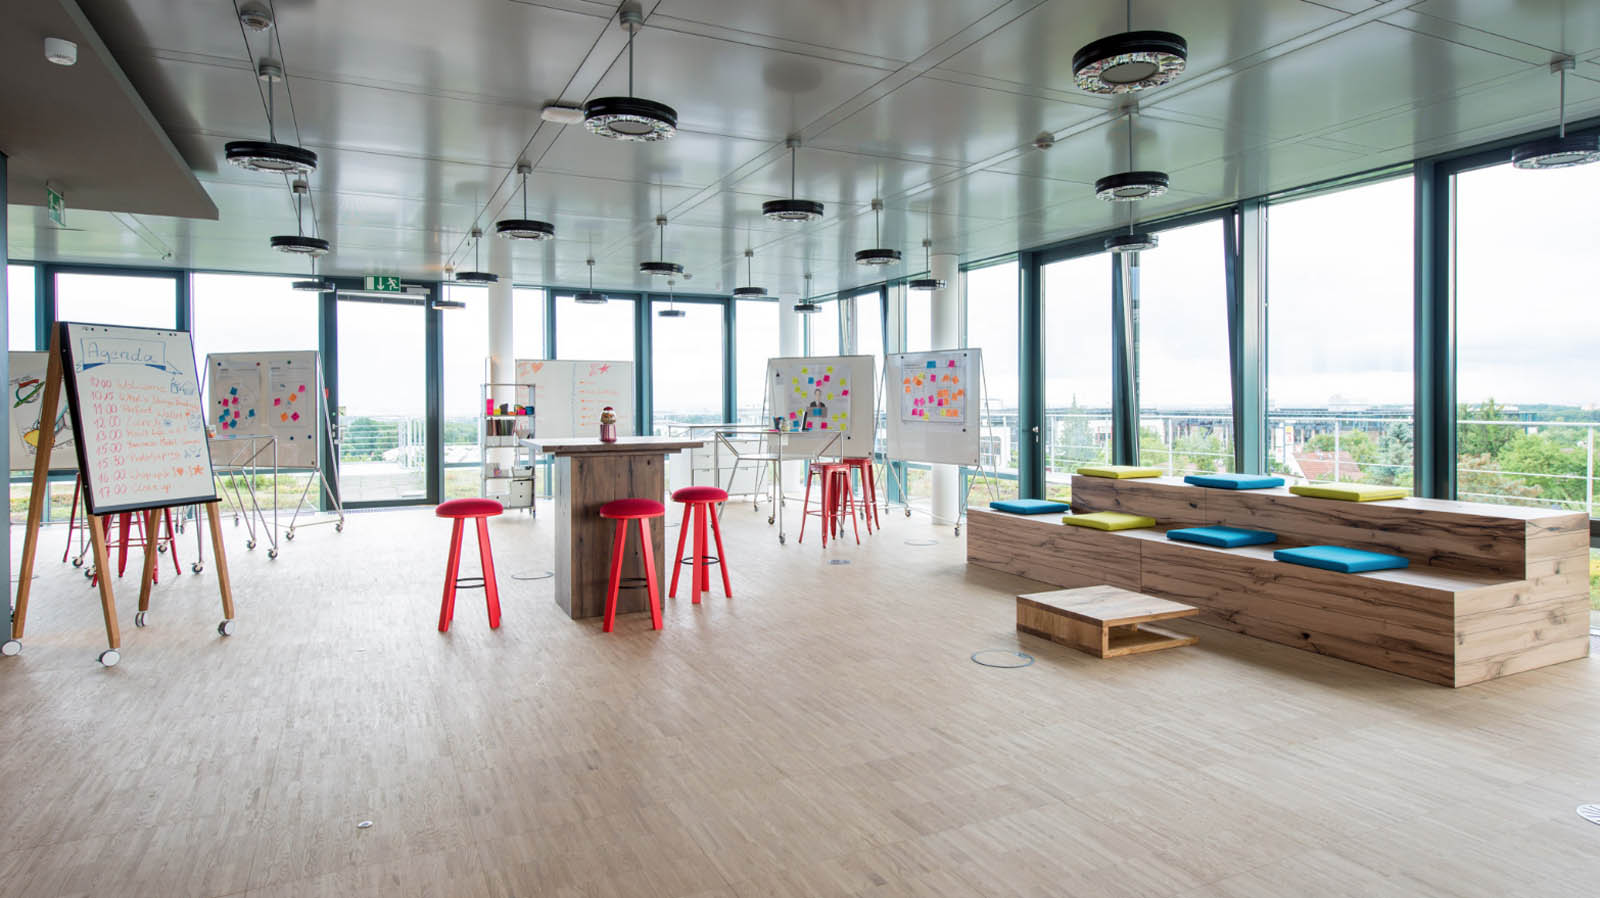 Accenture's Digital Innovation Center